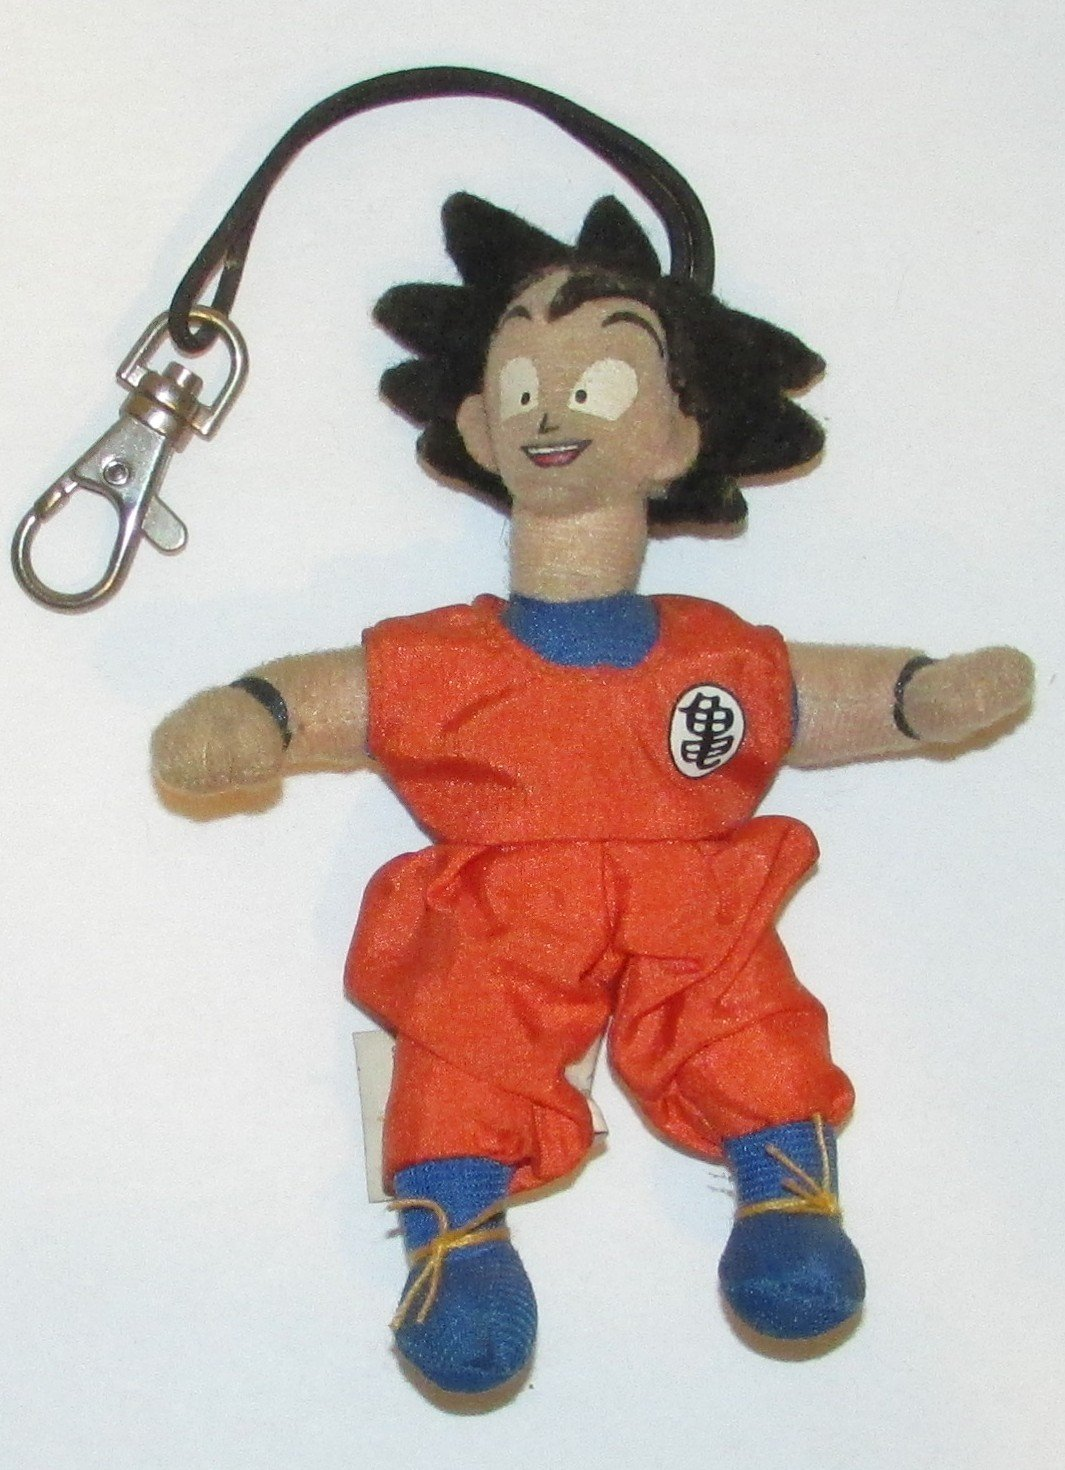 DRAGON BALL Z Anime Cloth with Hat KEY CHAIN Ring Keychain